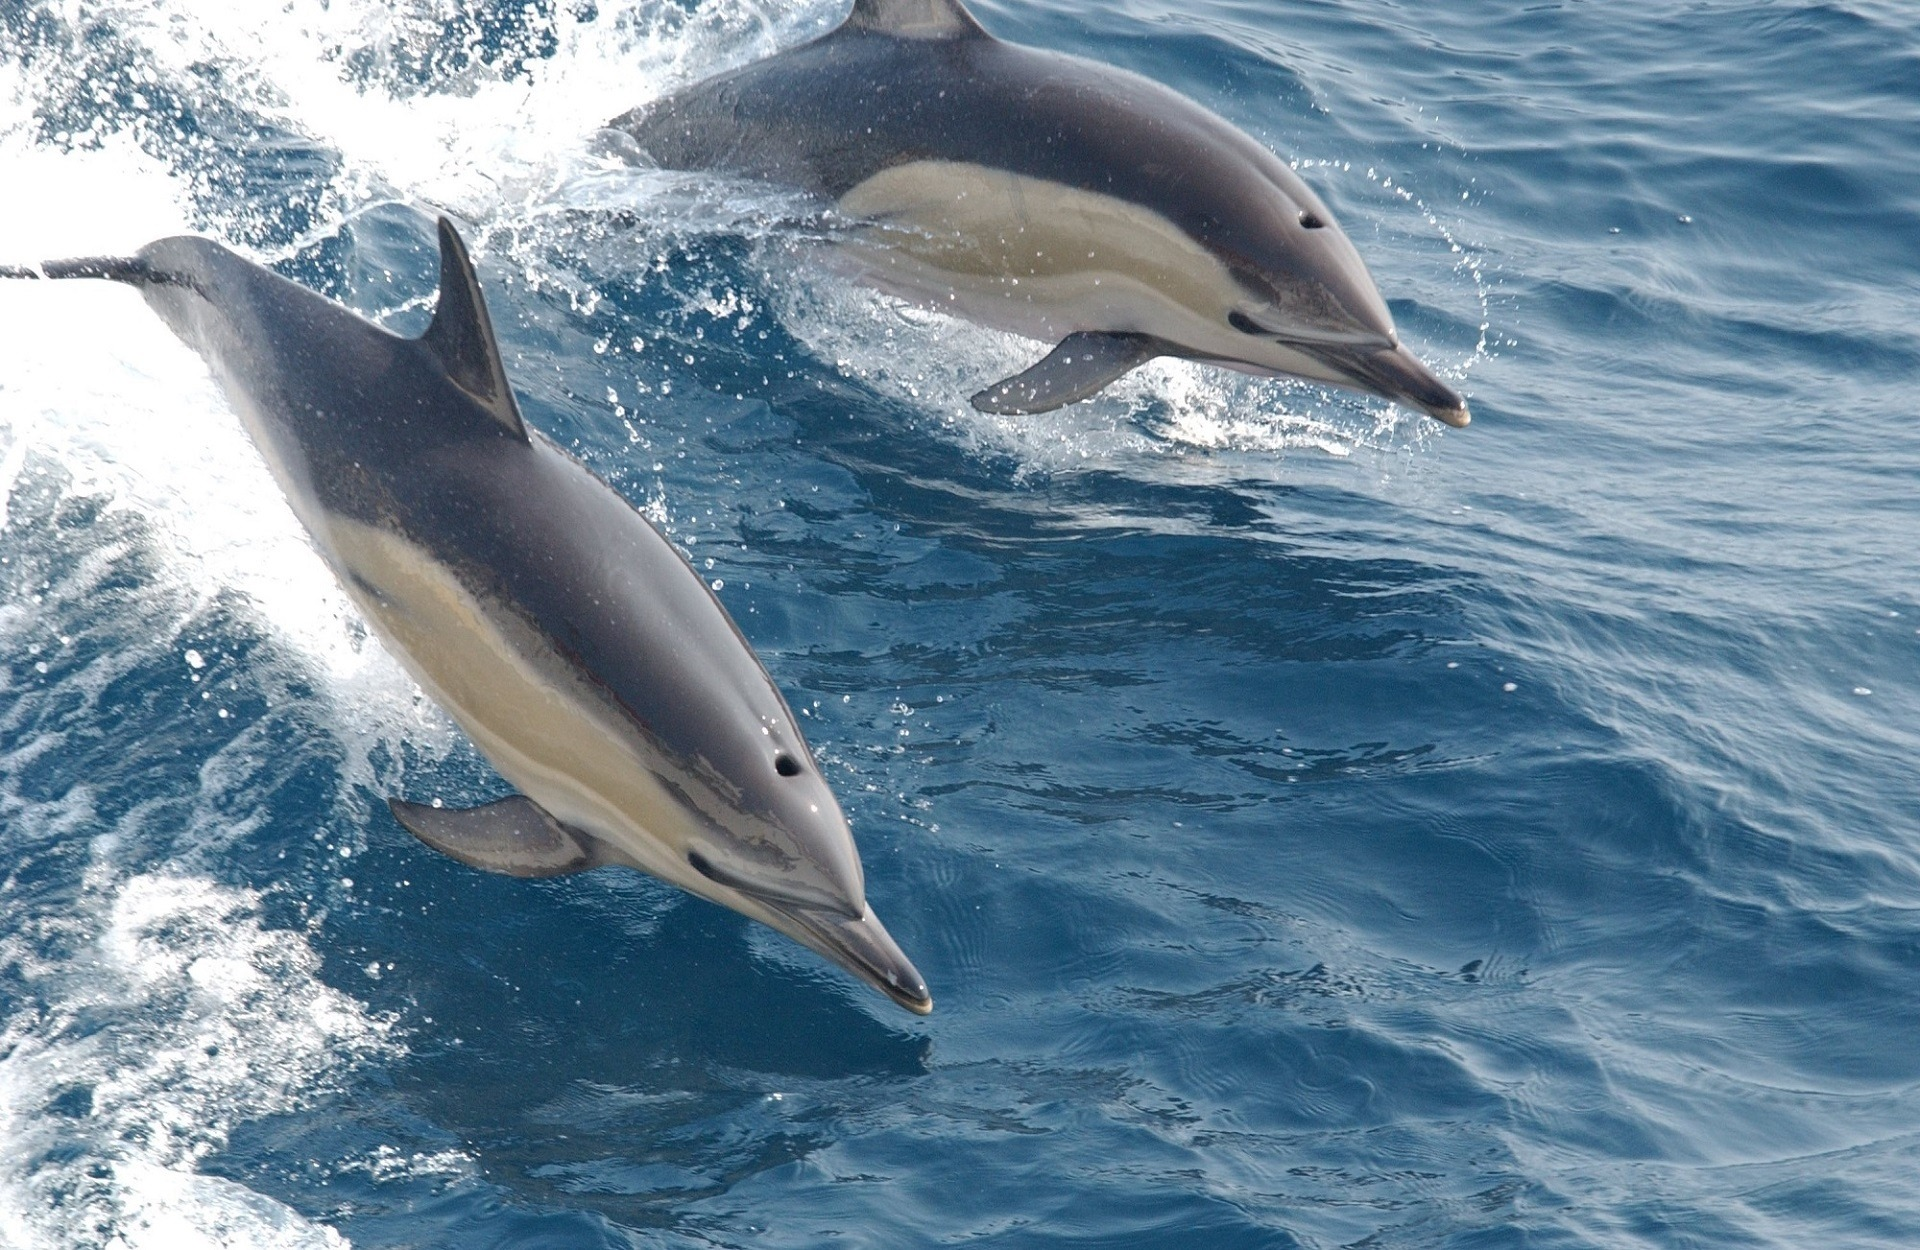 16 Of The Most Amazing Dolphin Pictures 1984124430